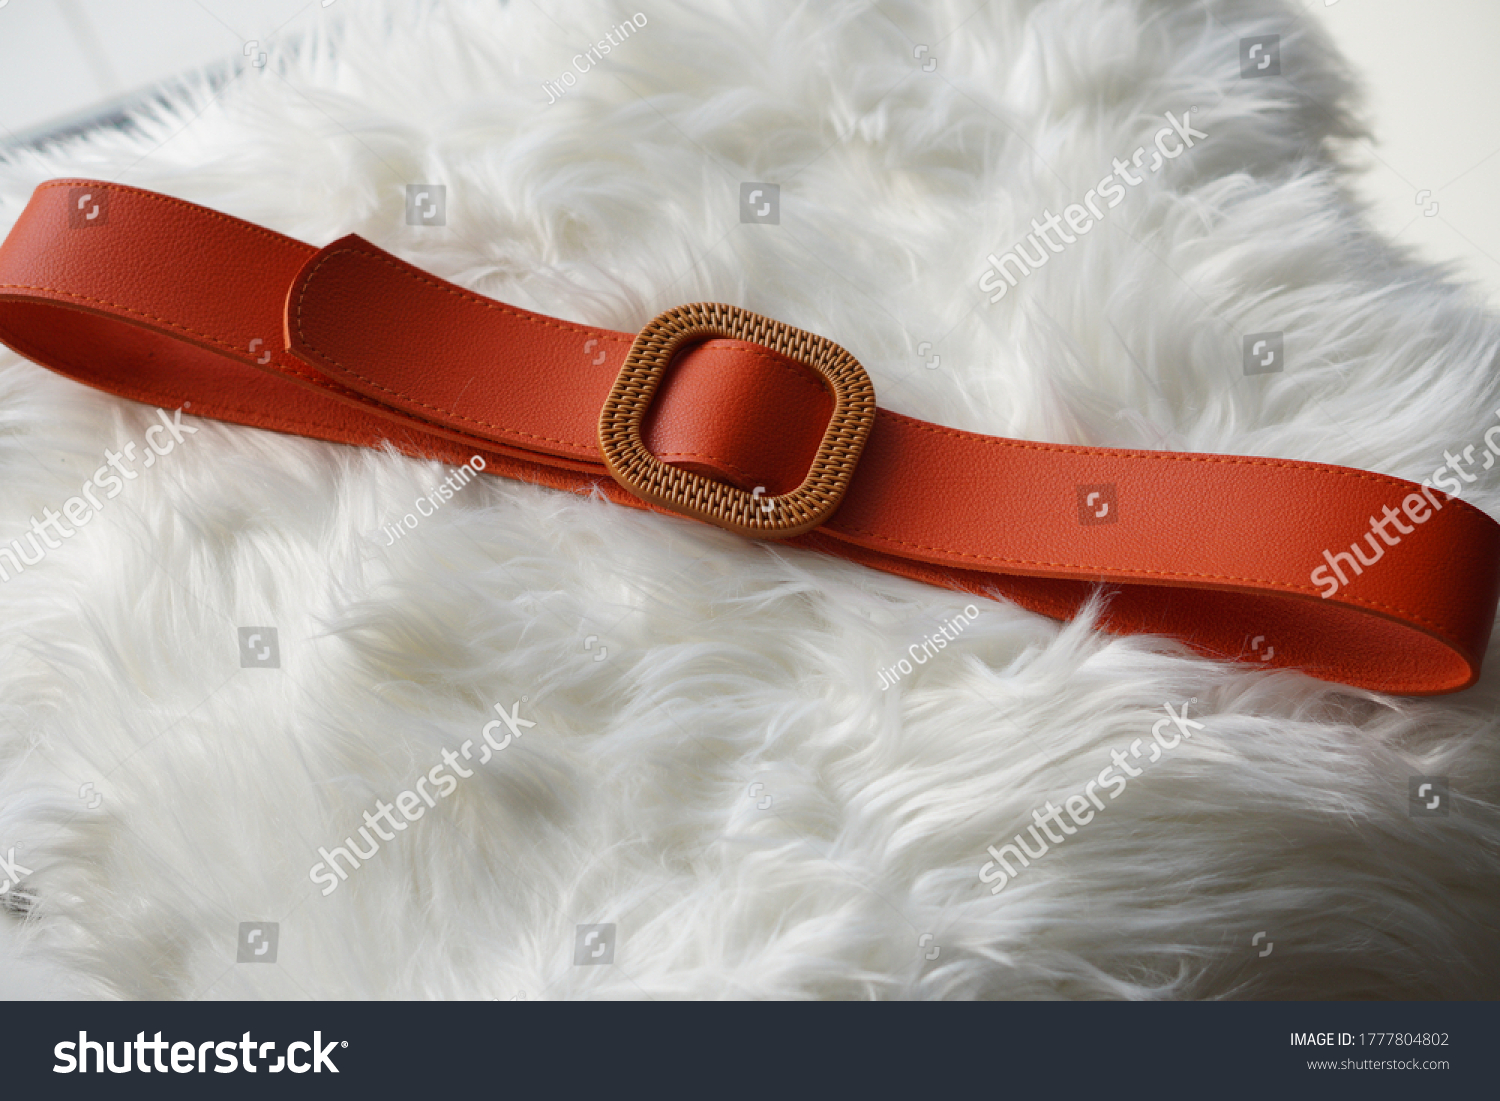 Woman belt with modern buckle upon a white hide blanket. #1777804802